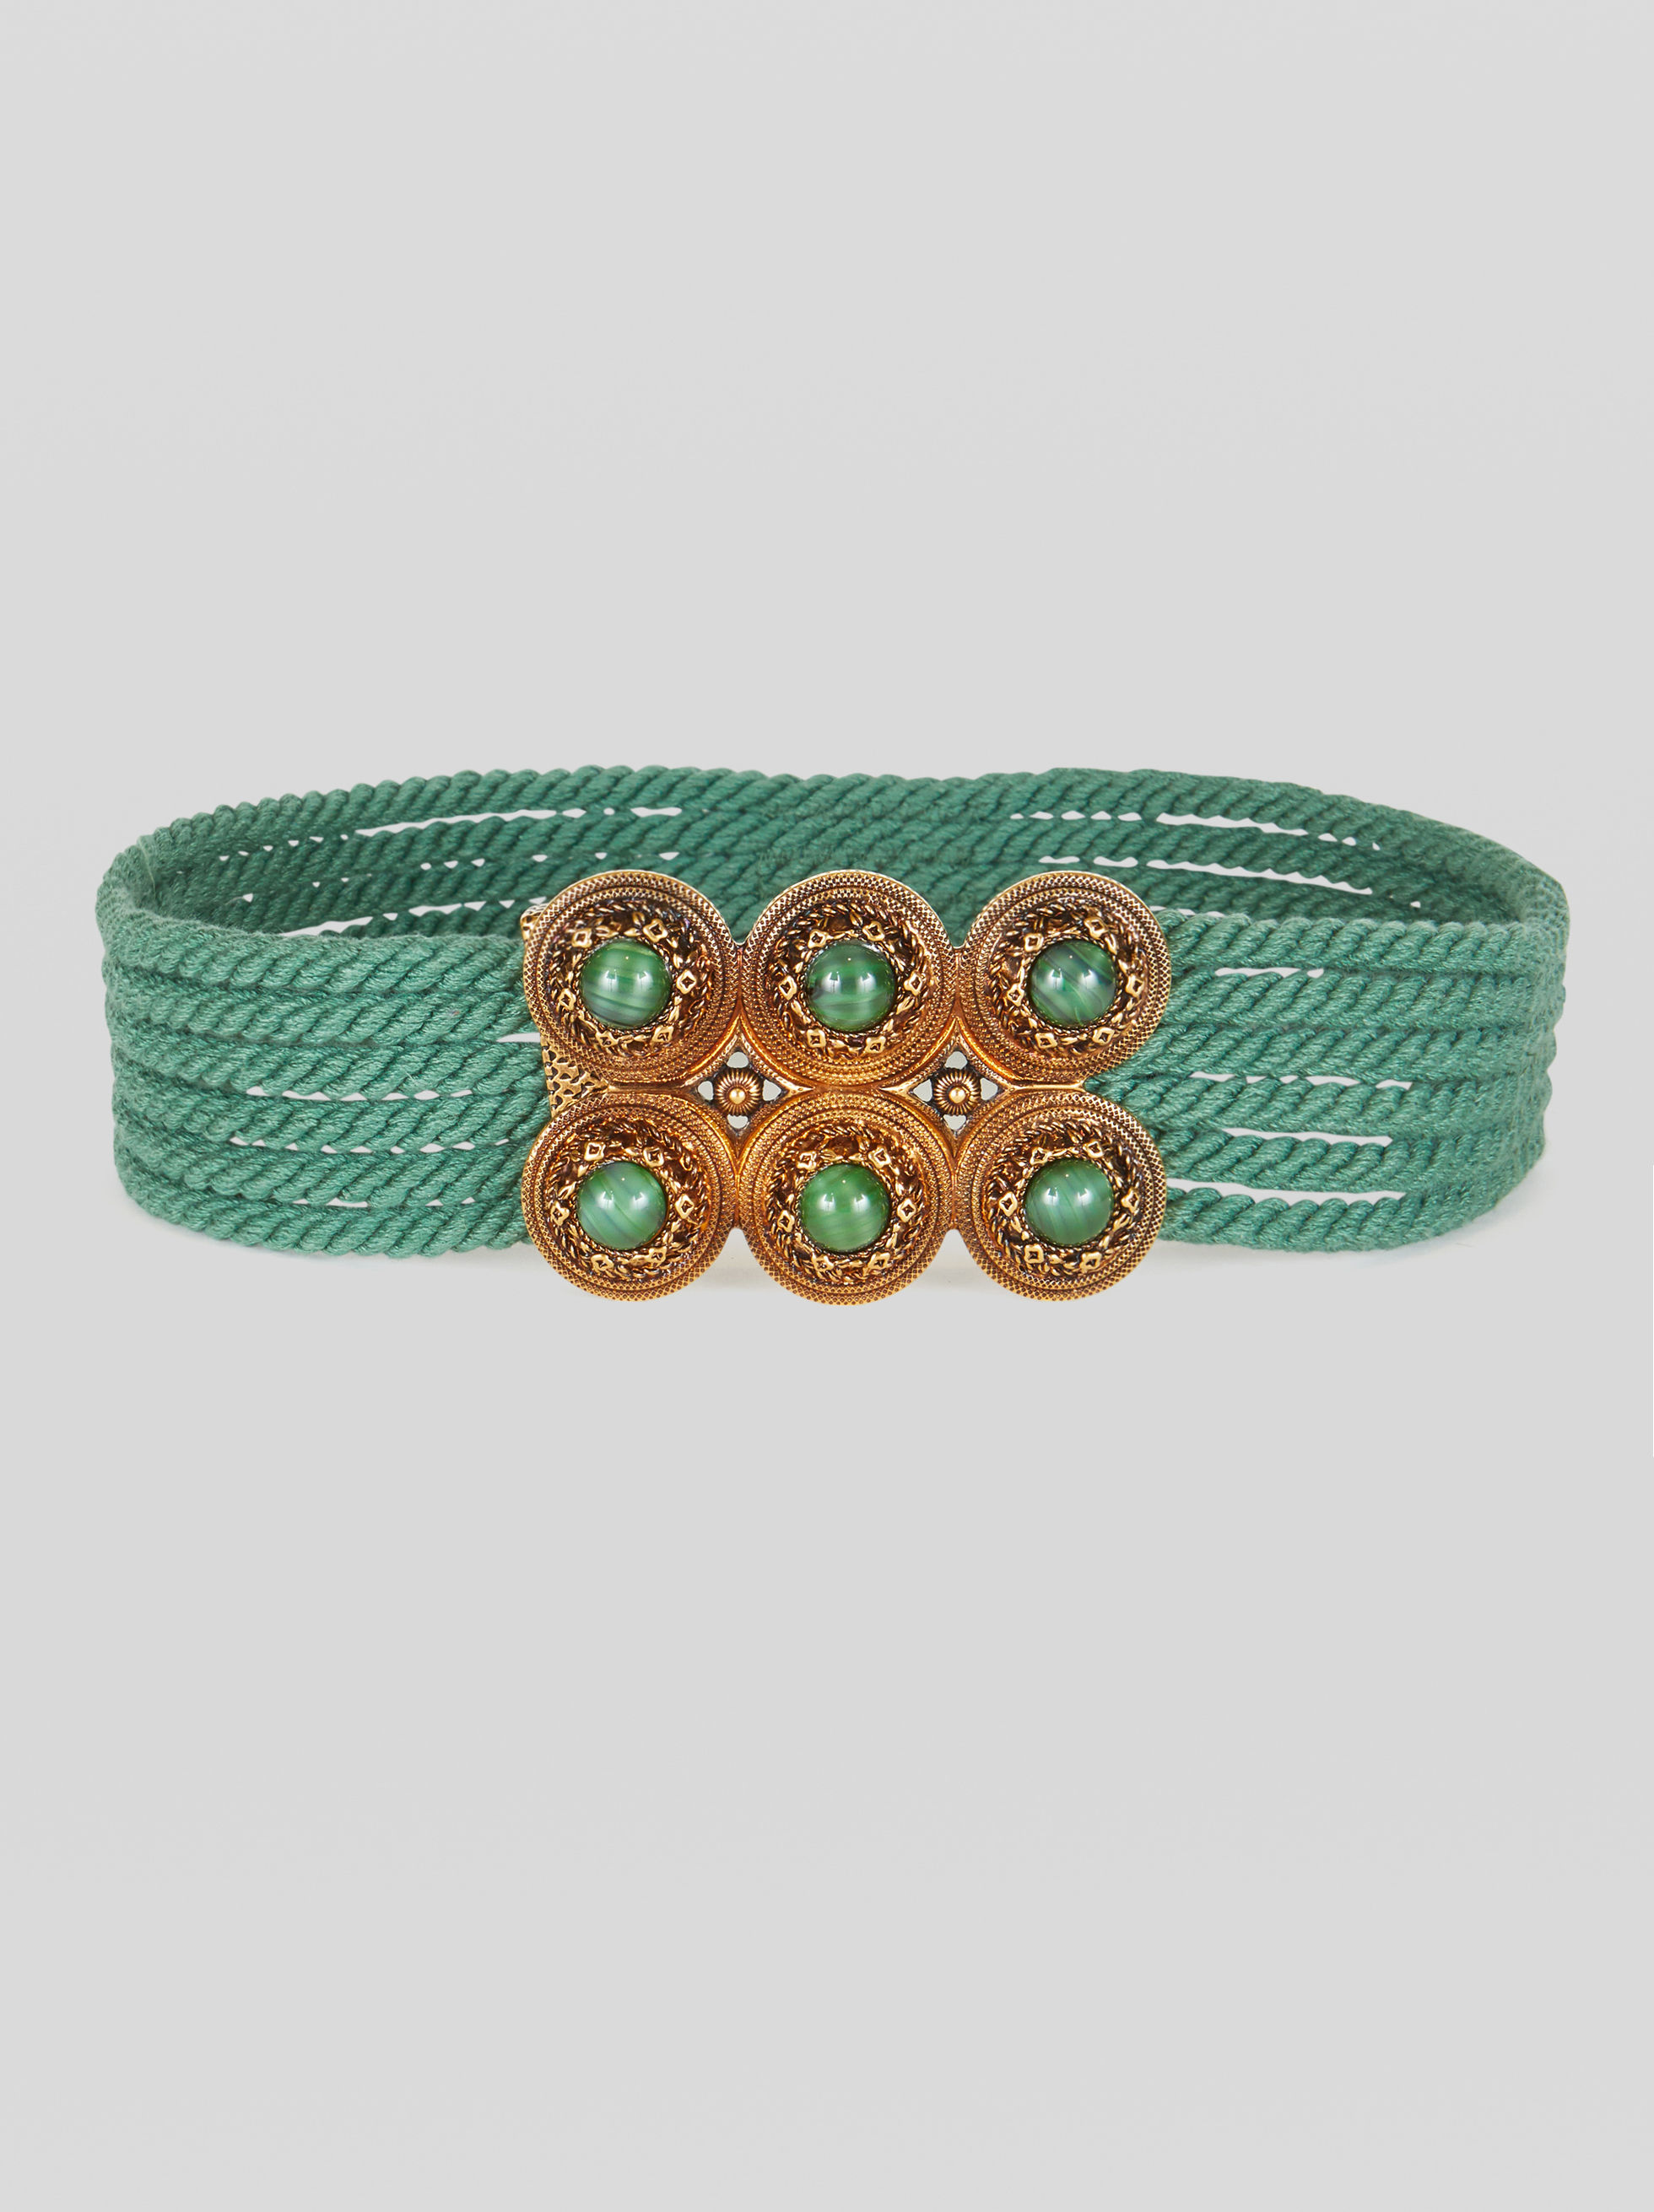 CORD BELT WITH JEWEL BUCKLE